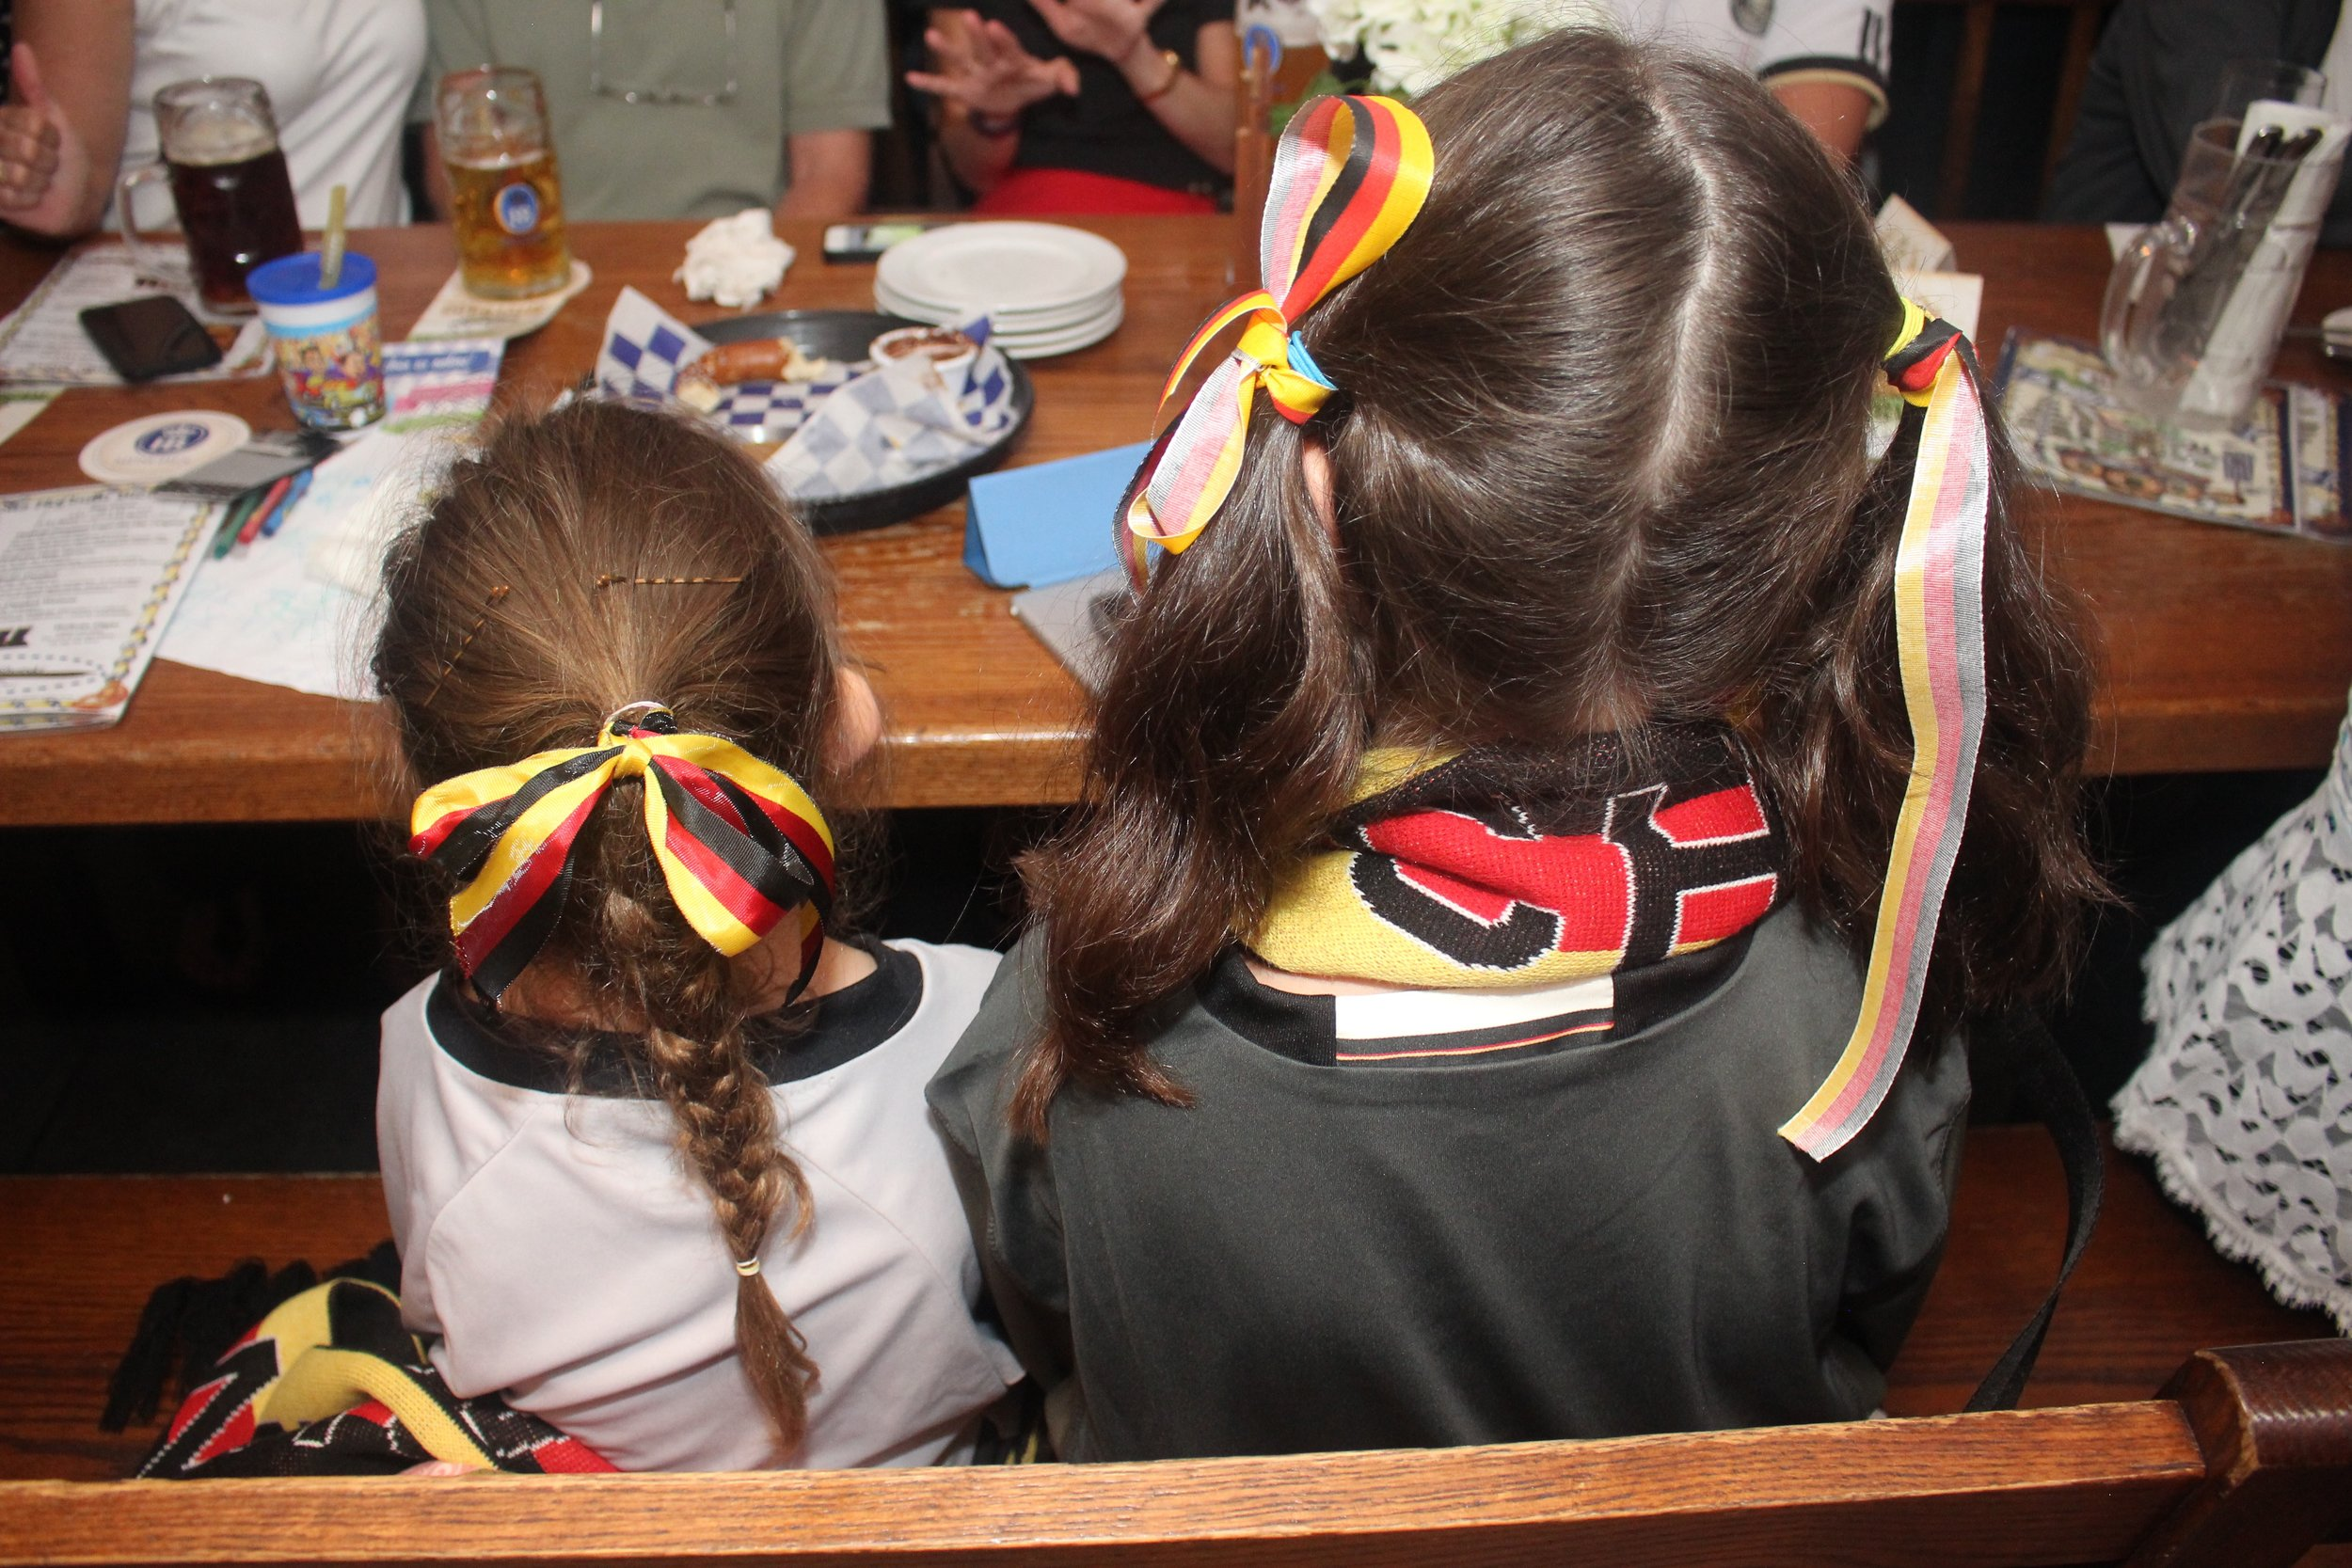 Kidtoberfest - Celebrate Oktoberfest with the whole family. Stop in for brunch on Sundays throughout Oktoberfest (9/16-10/21 from 1-3pm) and bring the little ones. Live accordion music and activities for the kids. Best of all - Children 10 & under eat FREE!